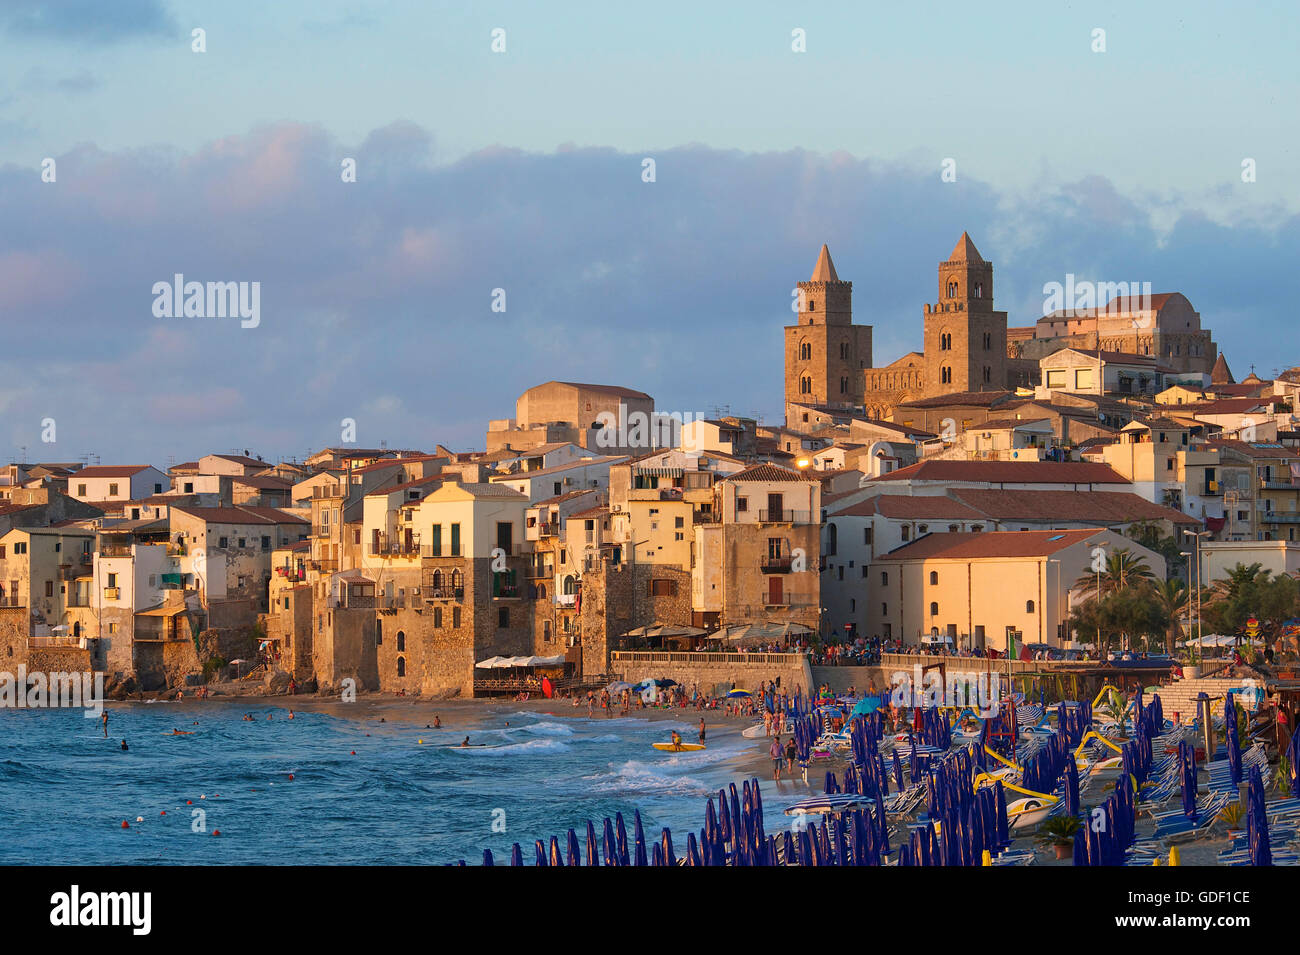 Cathedral San Salvatore, Cefalu, Sicily, Italy - Stock Image